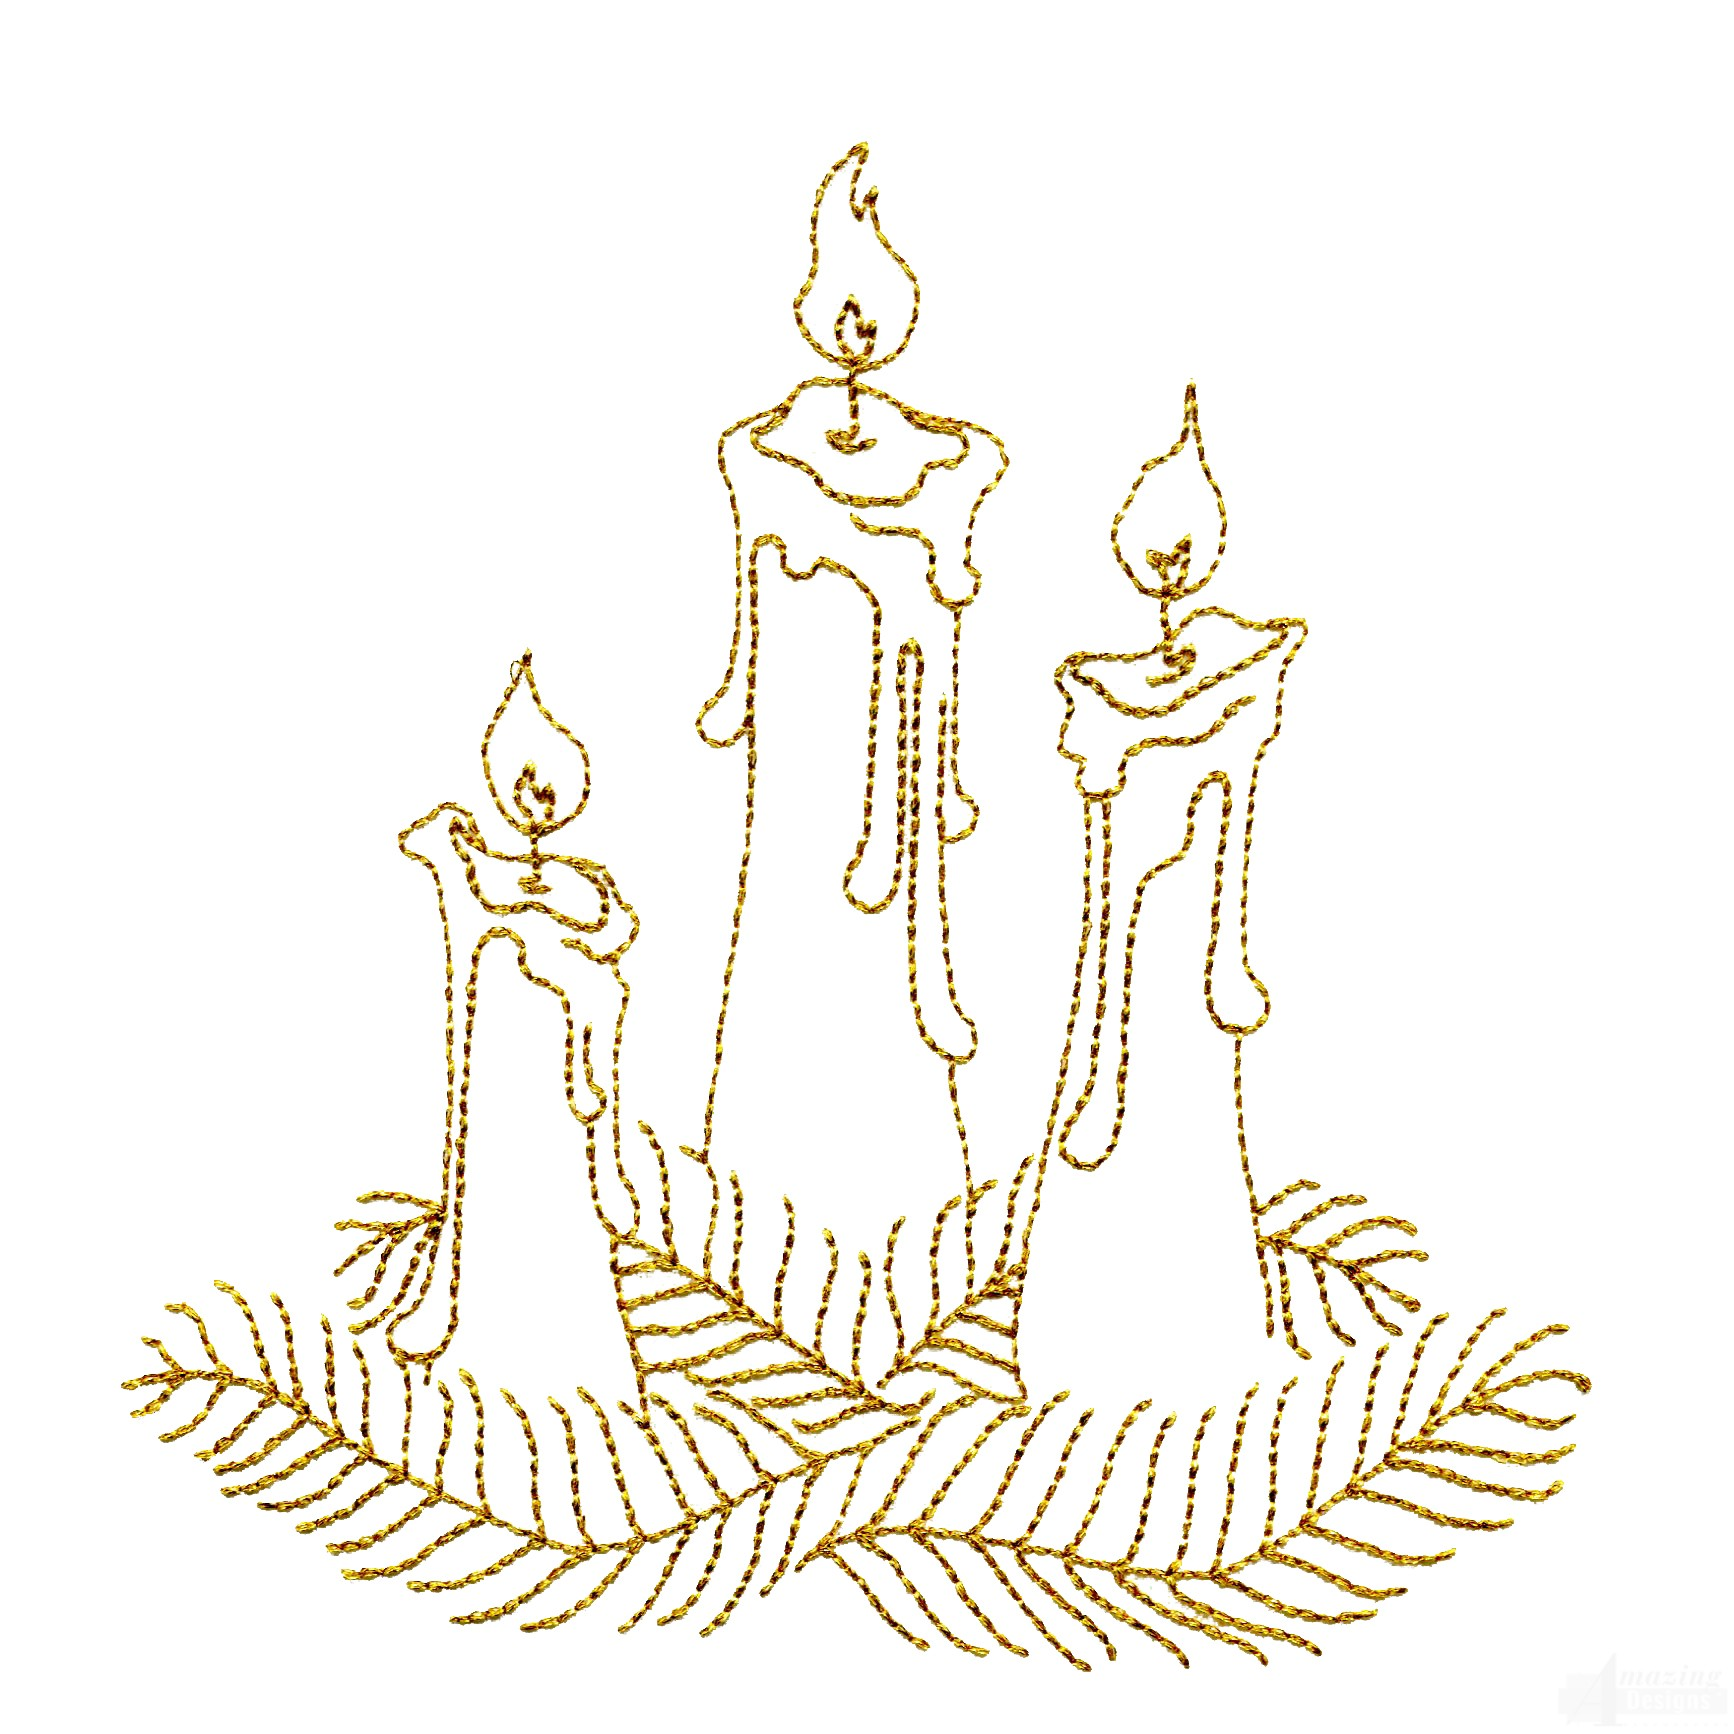 Line Work Design : Linework candles embroidery design